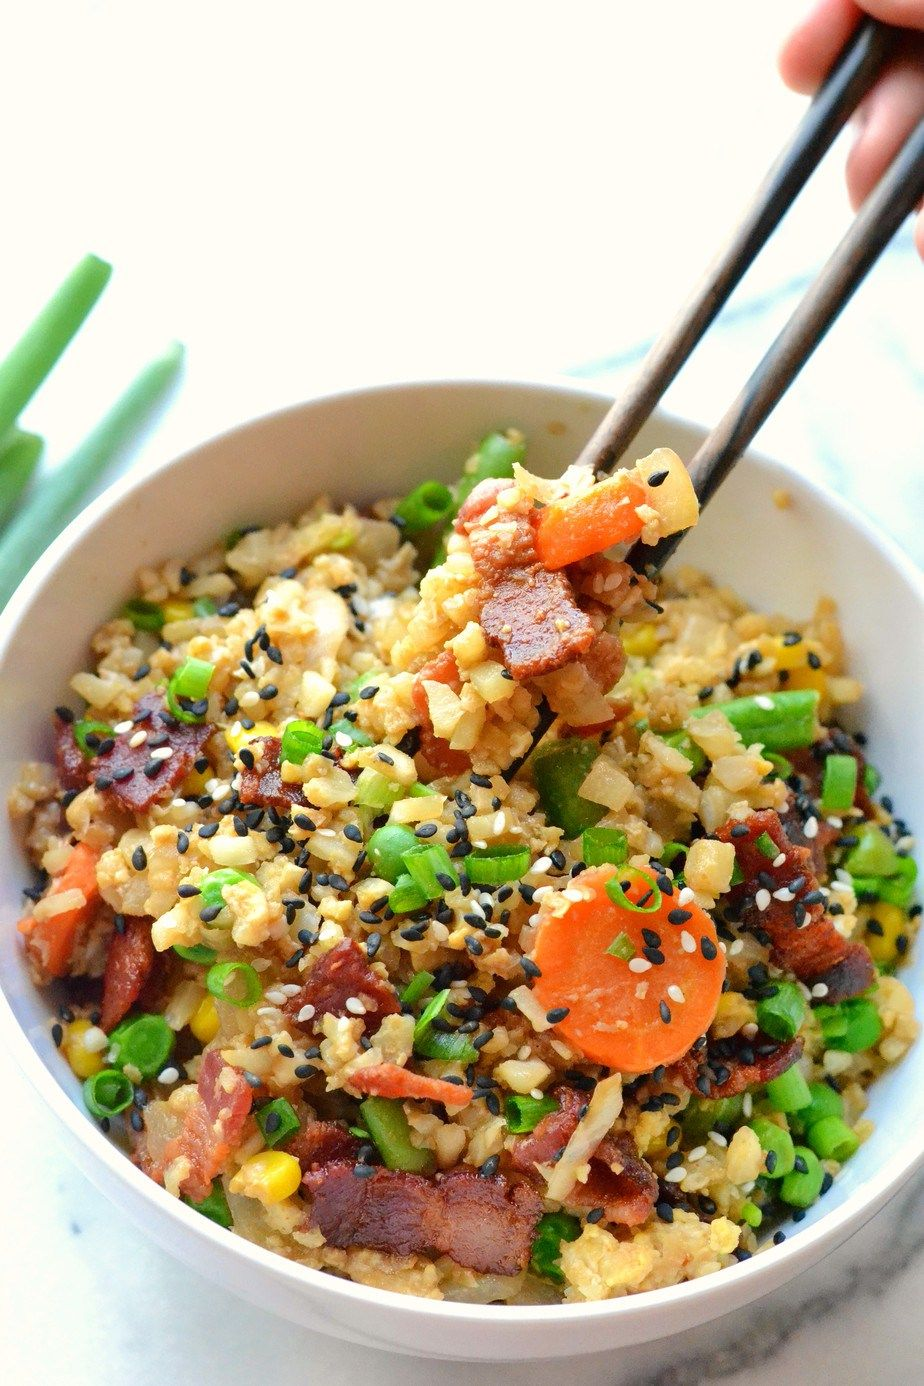 This recipe for Cauliflower Fried Rice is a perfectly delicious, healthy, and fast alternative for traditional fried rice!